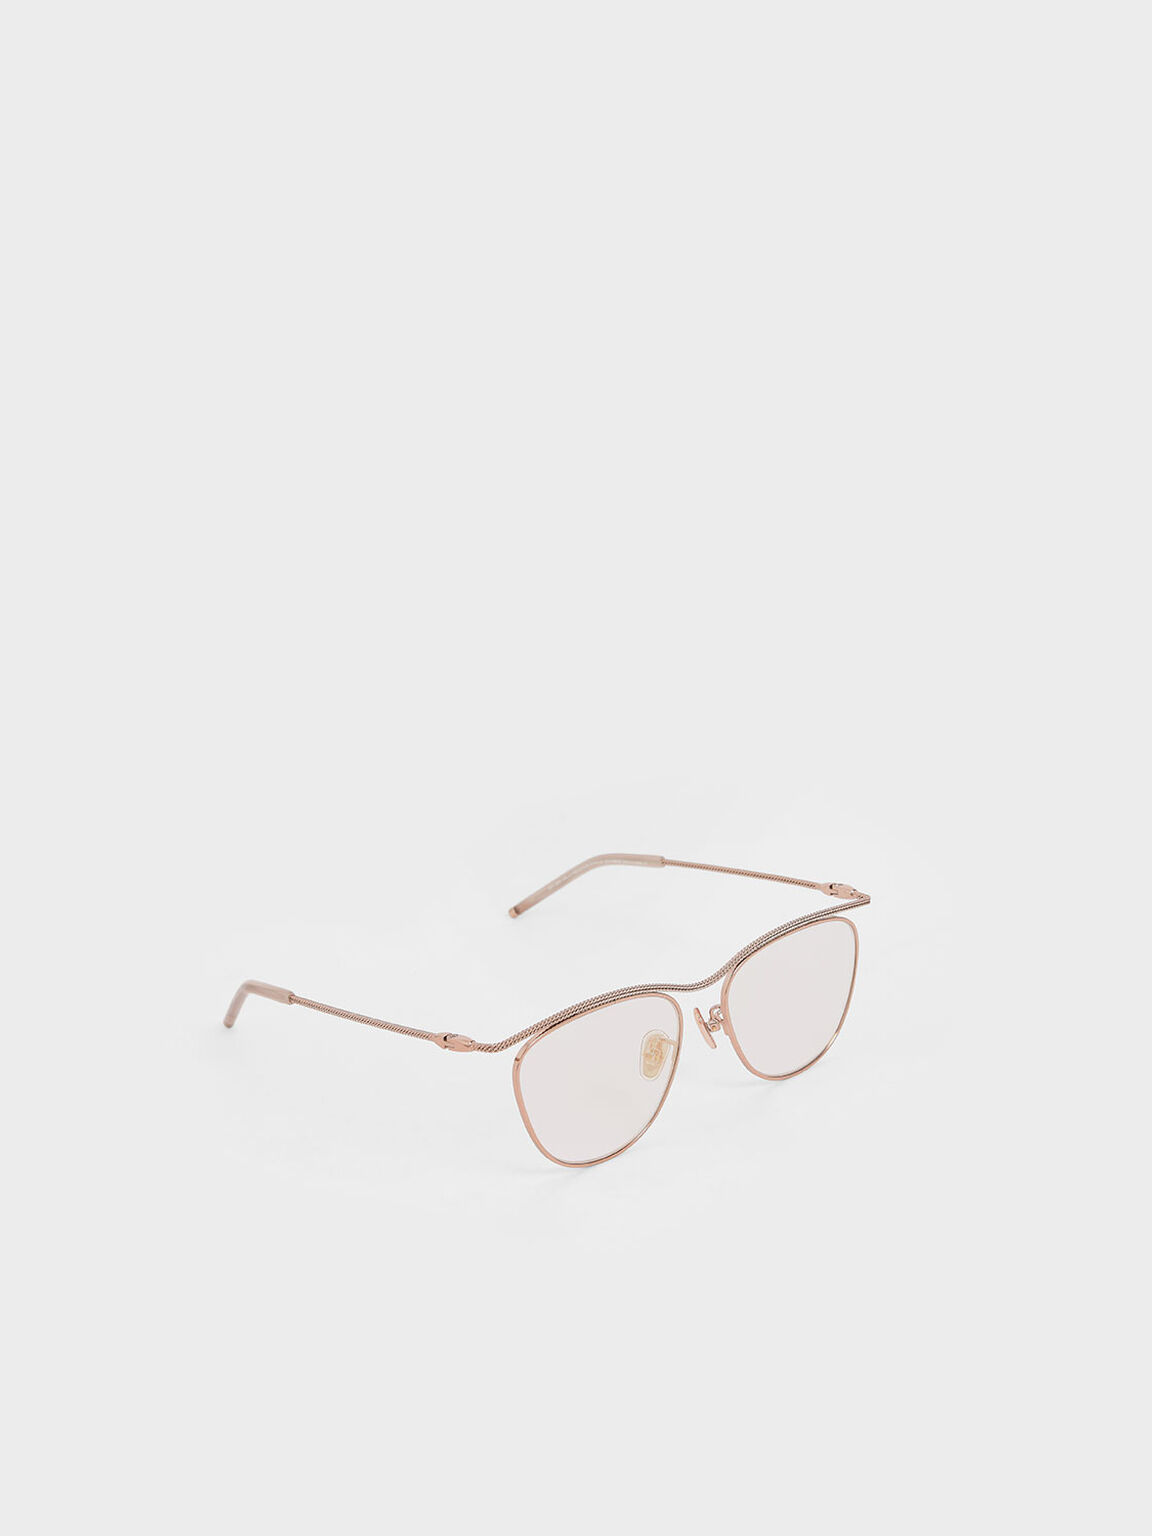 Wireframe Sunglasses, Rose Gold, hi-res